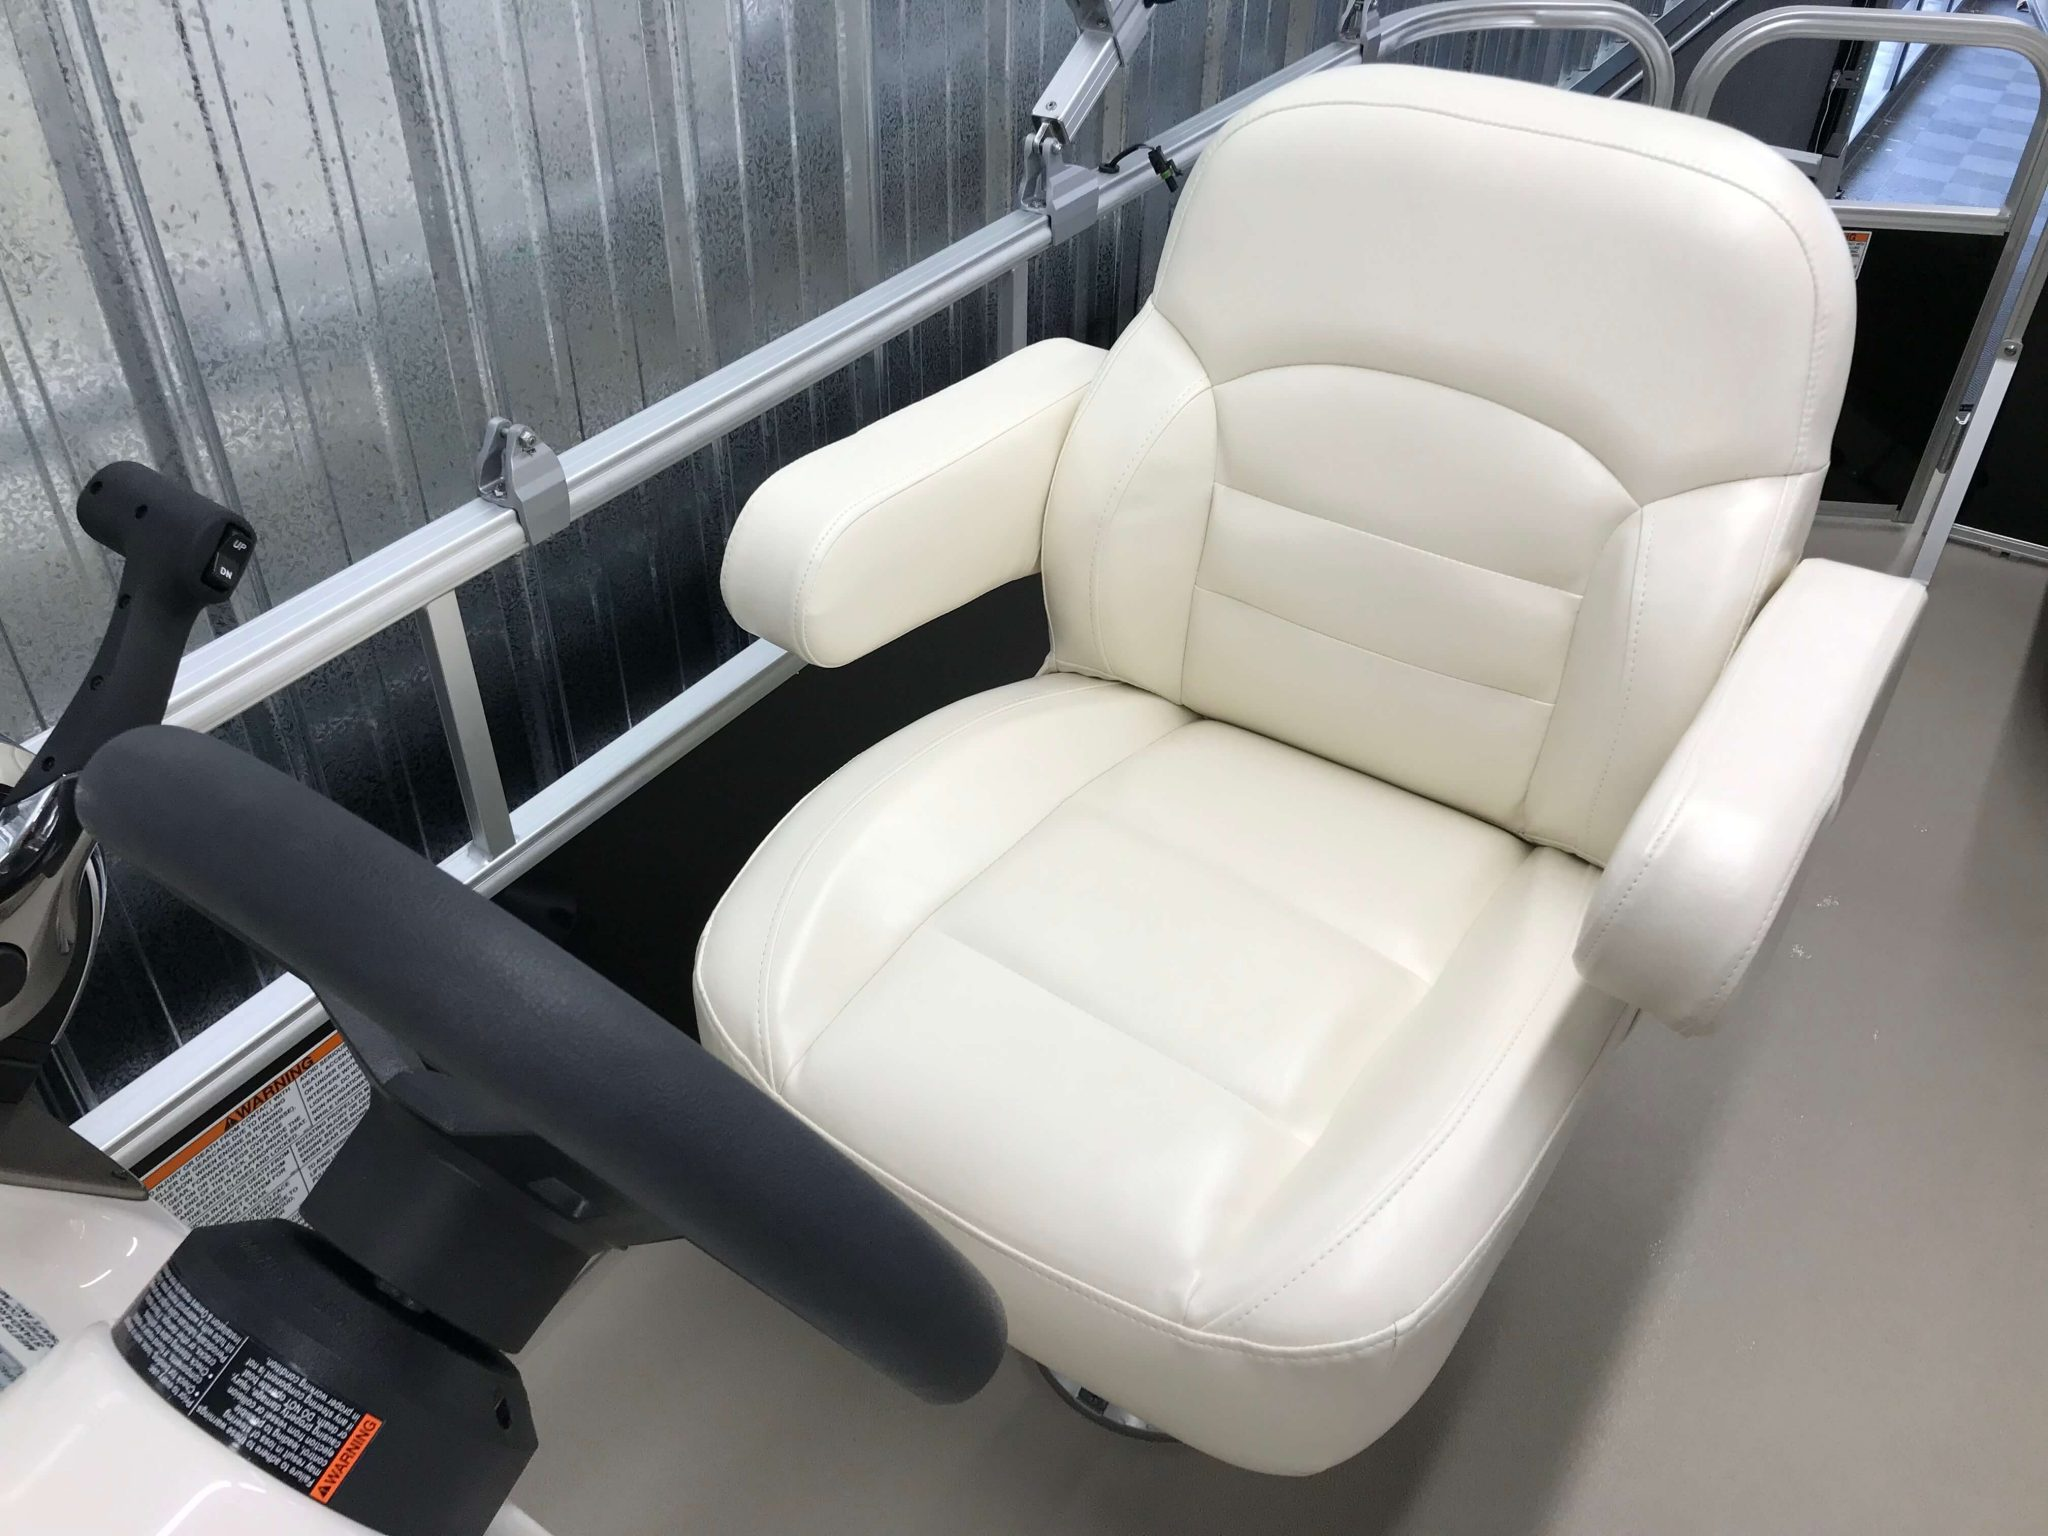 2019 SunChaser Oasis 820 Cruise Captains Helm Chair